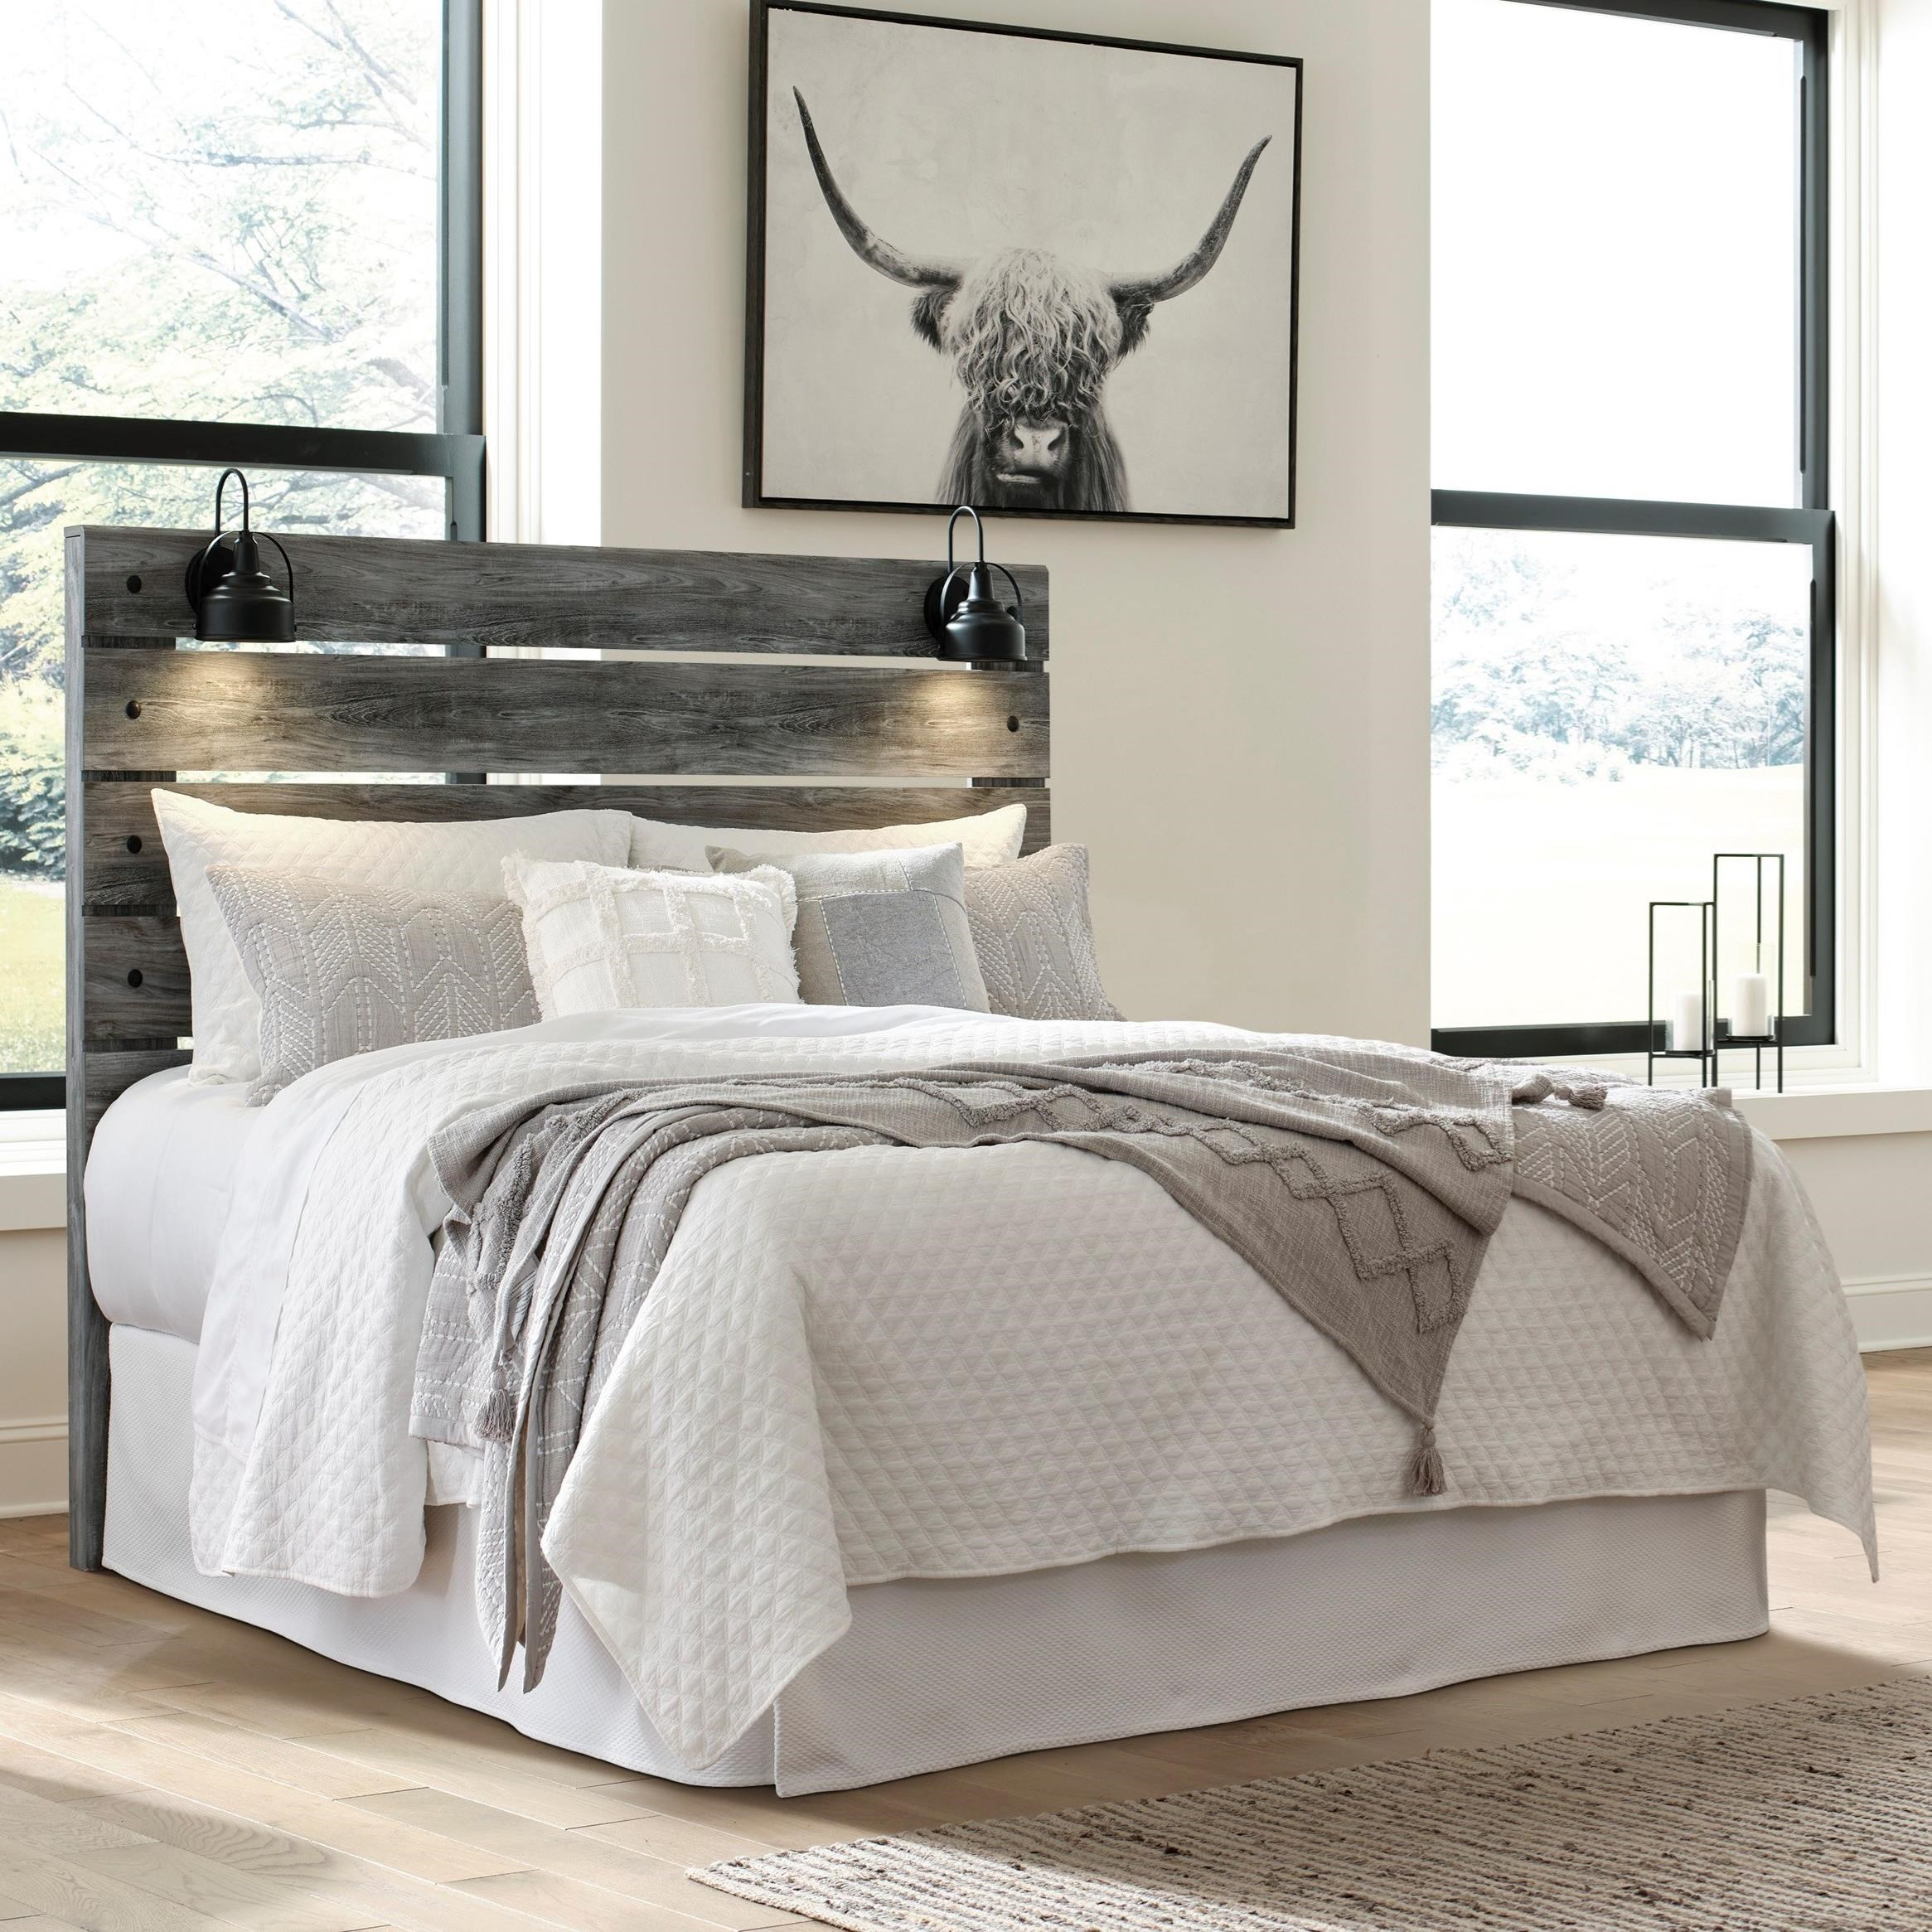 Baystorm Queen Panel Headboard by Signature Design by Ashley at Standard Furniture